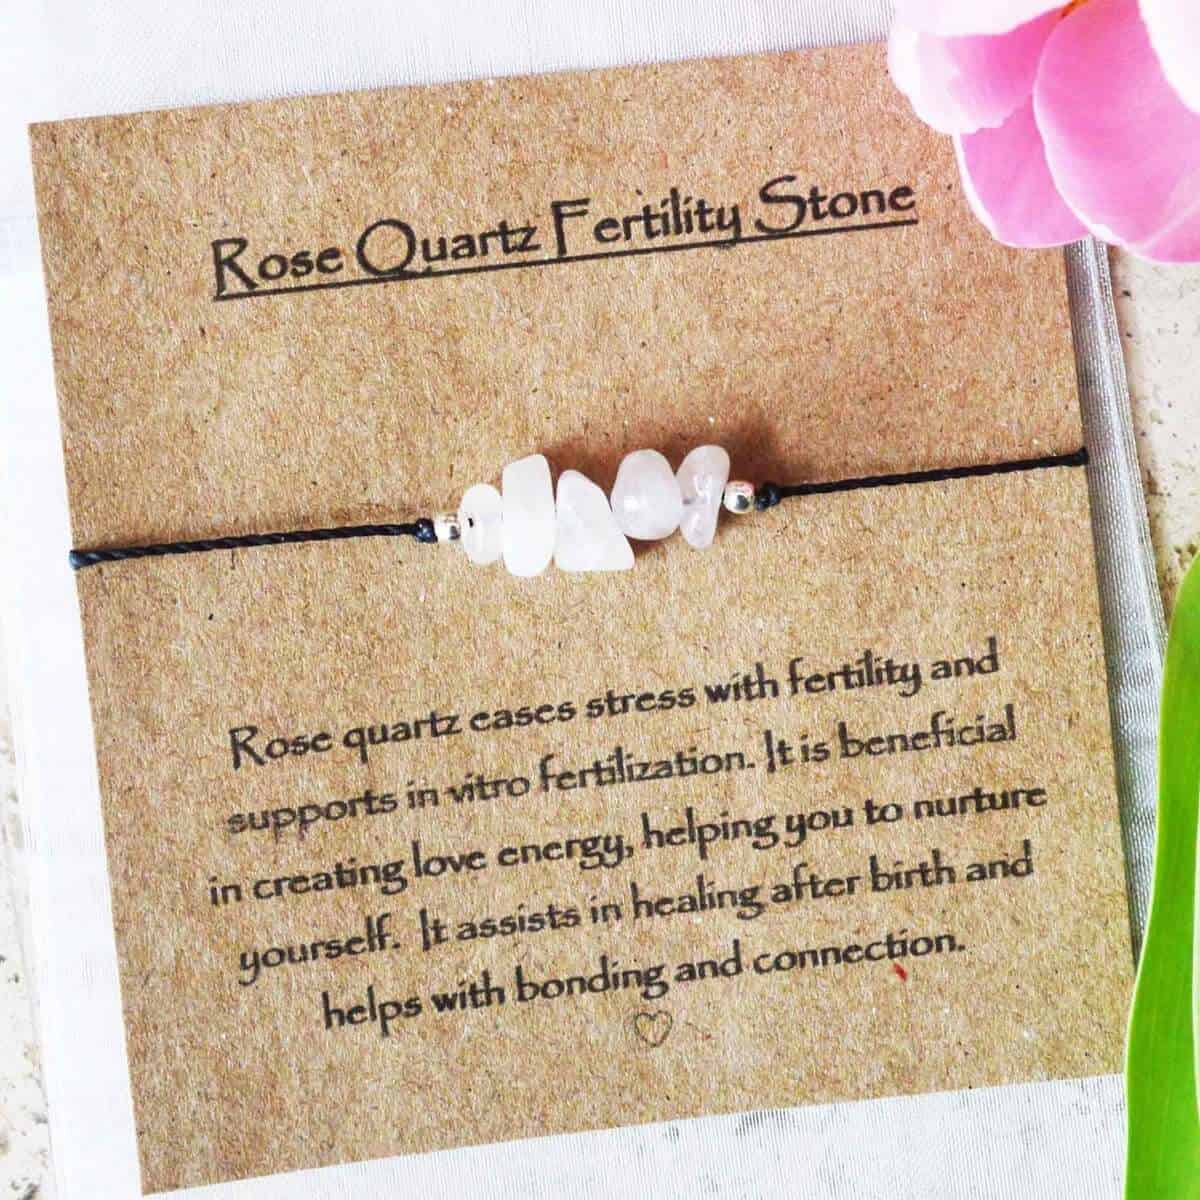 Rose quartz fertility bracelet on brown card with explanation of how the gem helps improve fertility